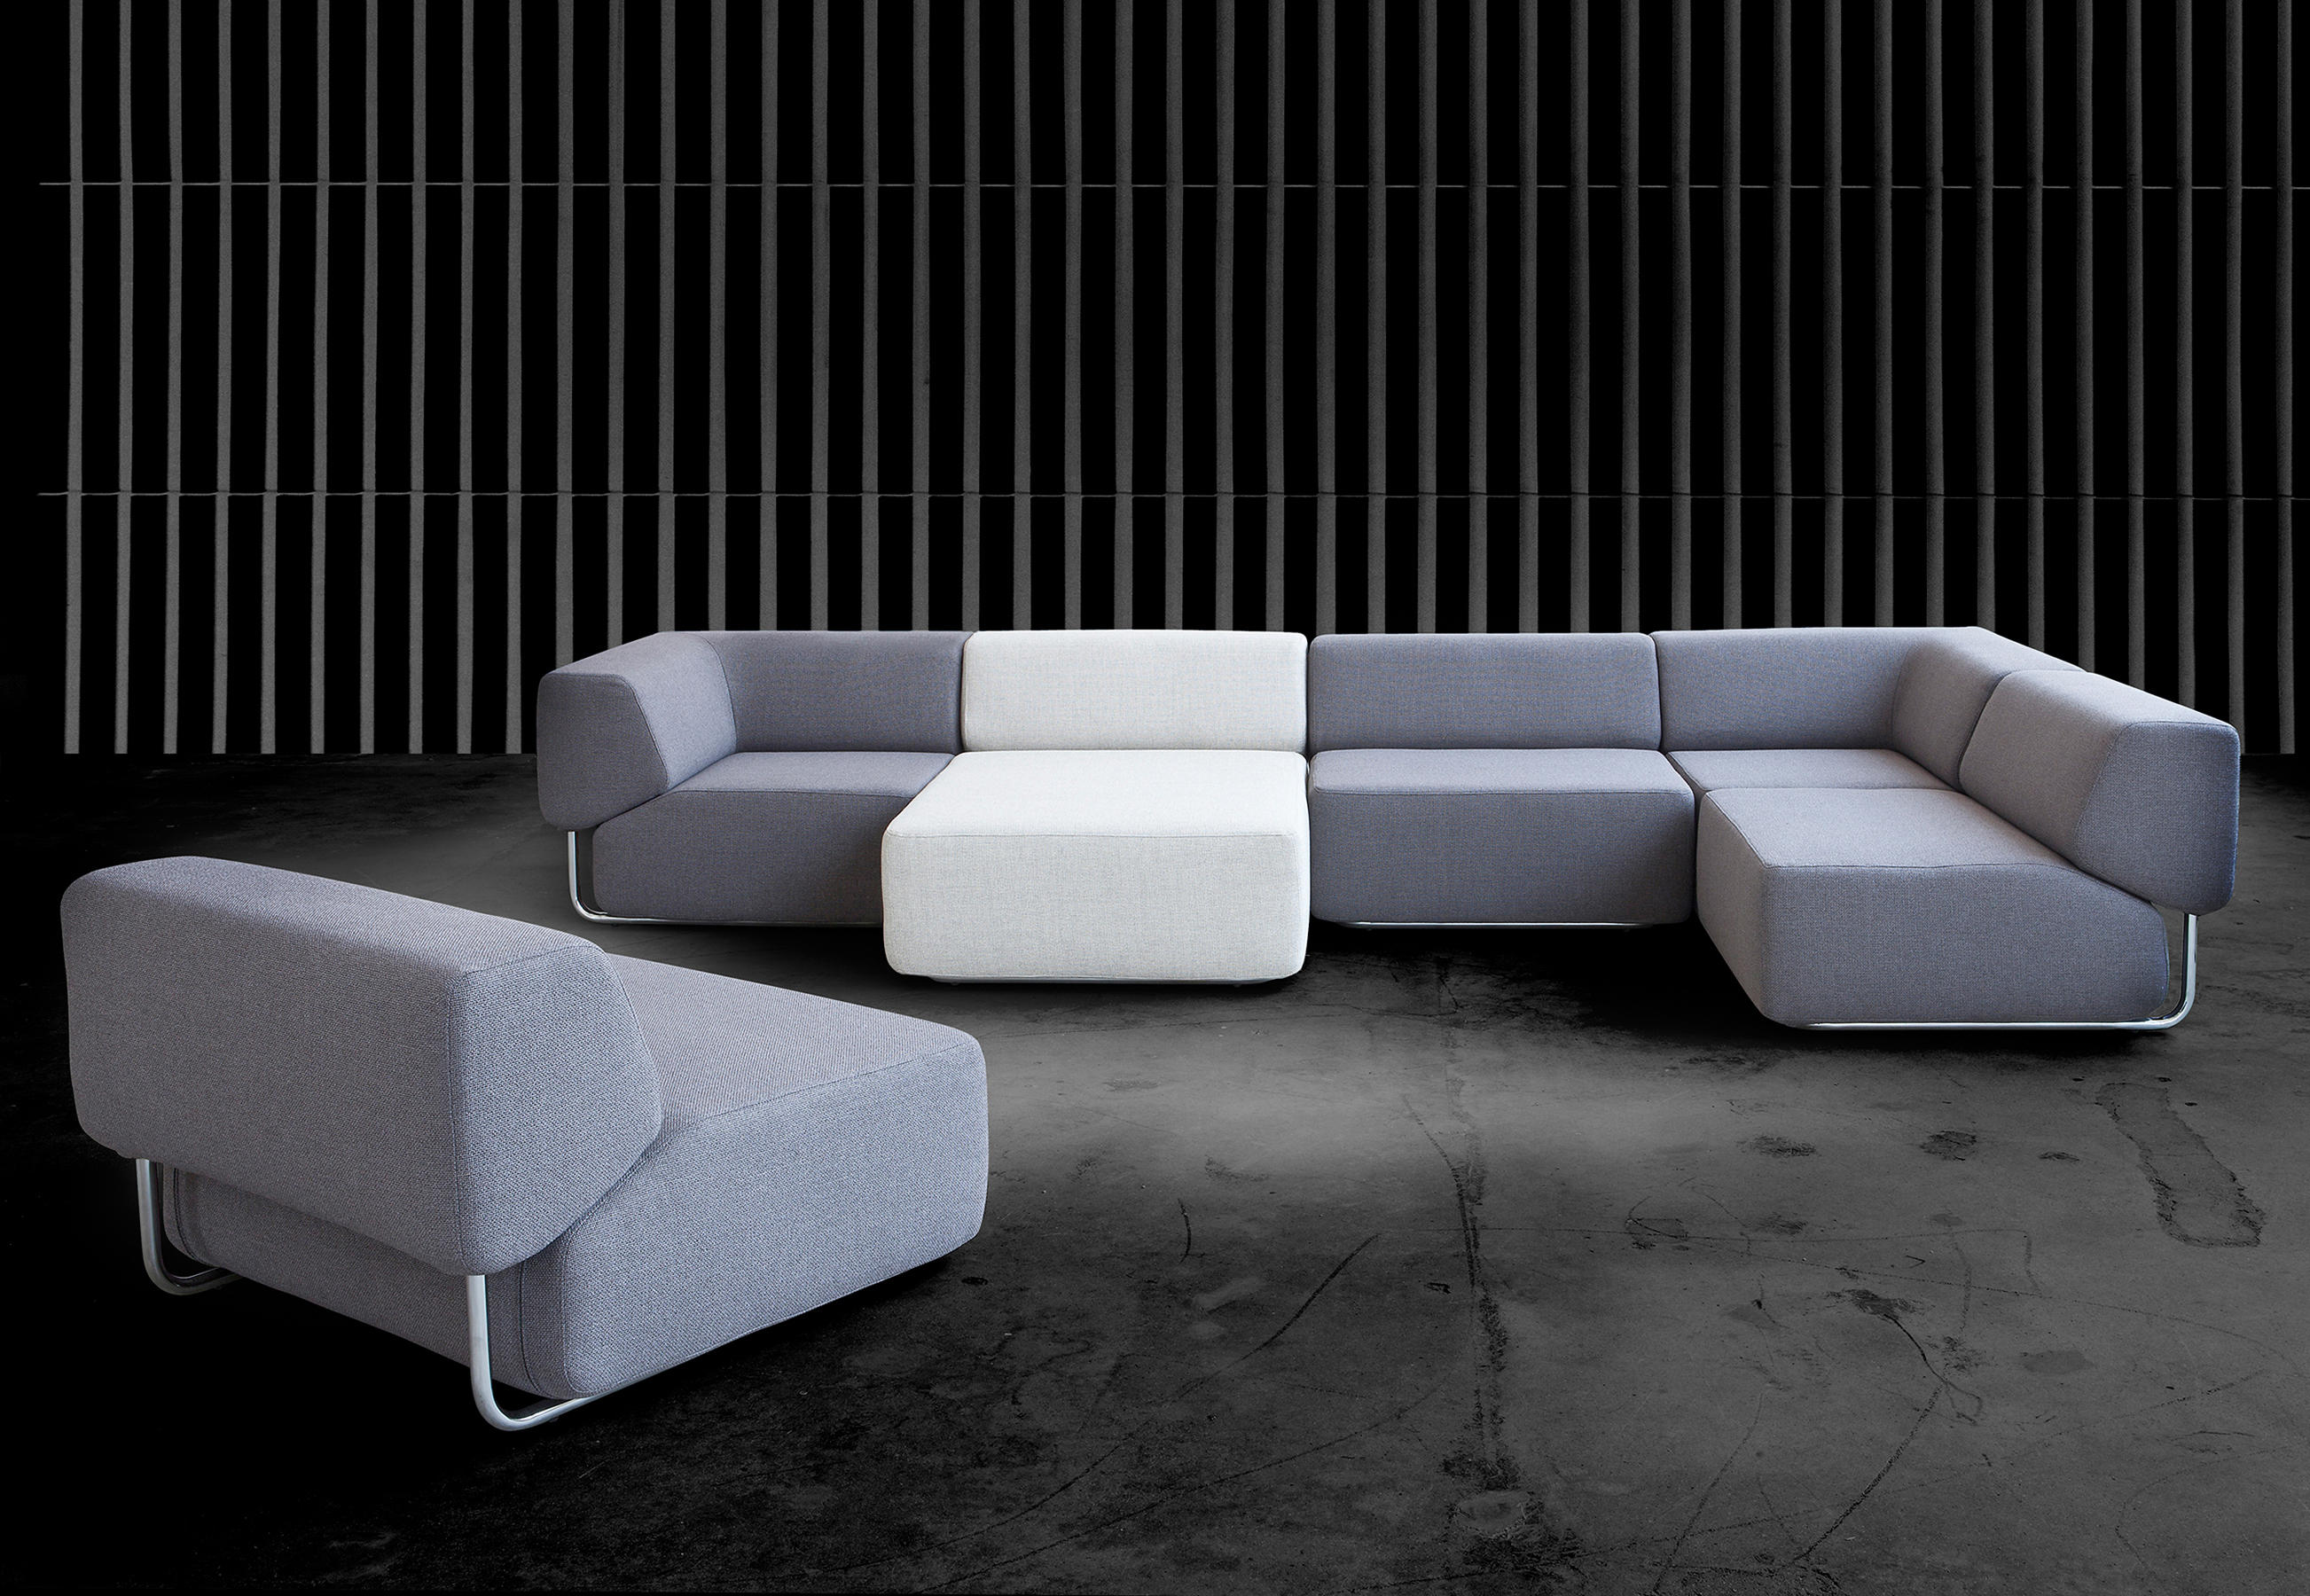 noa sofa modulare sitzgruppen von softline a s architonic. Black Bedroom Furniture Sets. Home Design Ideas